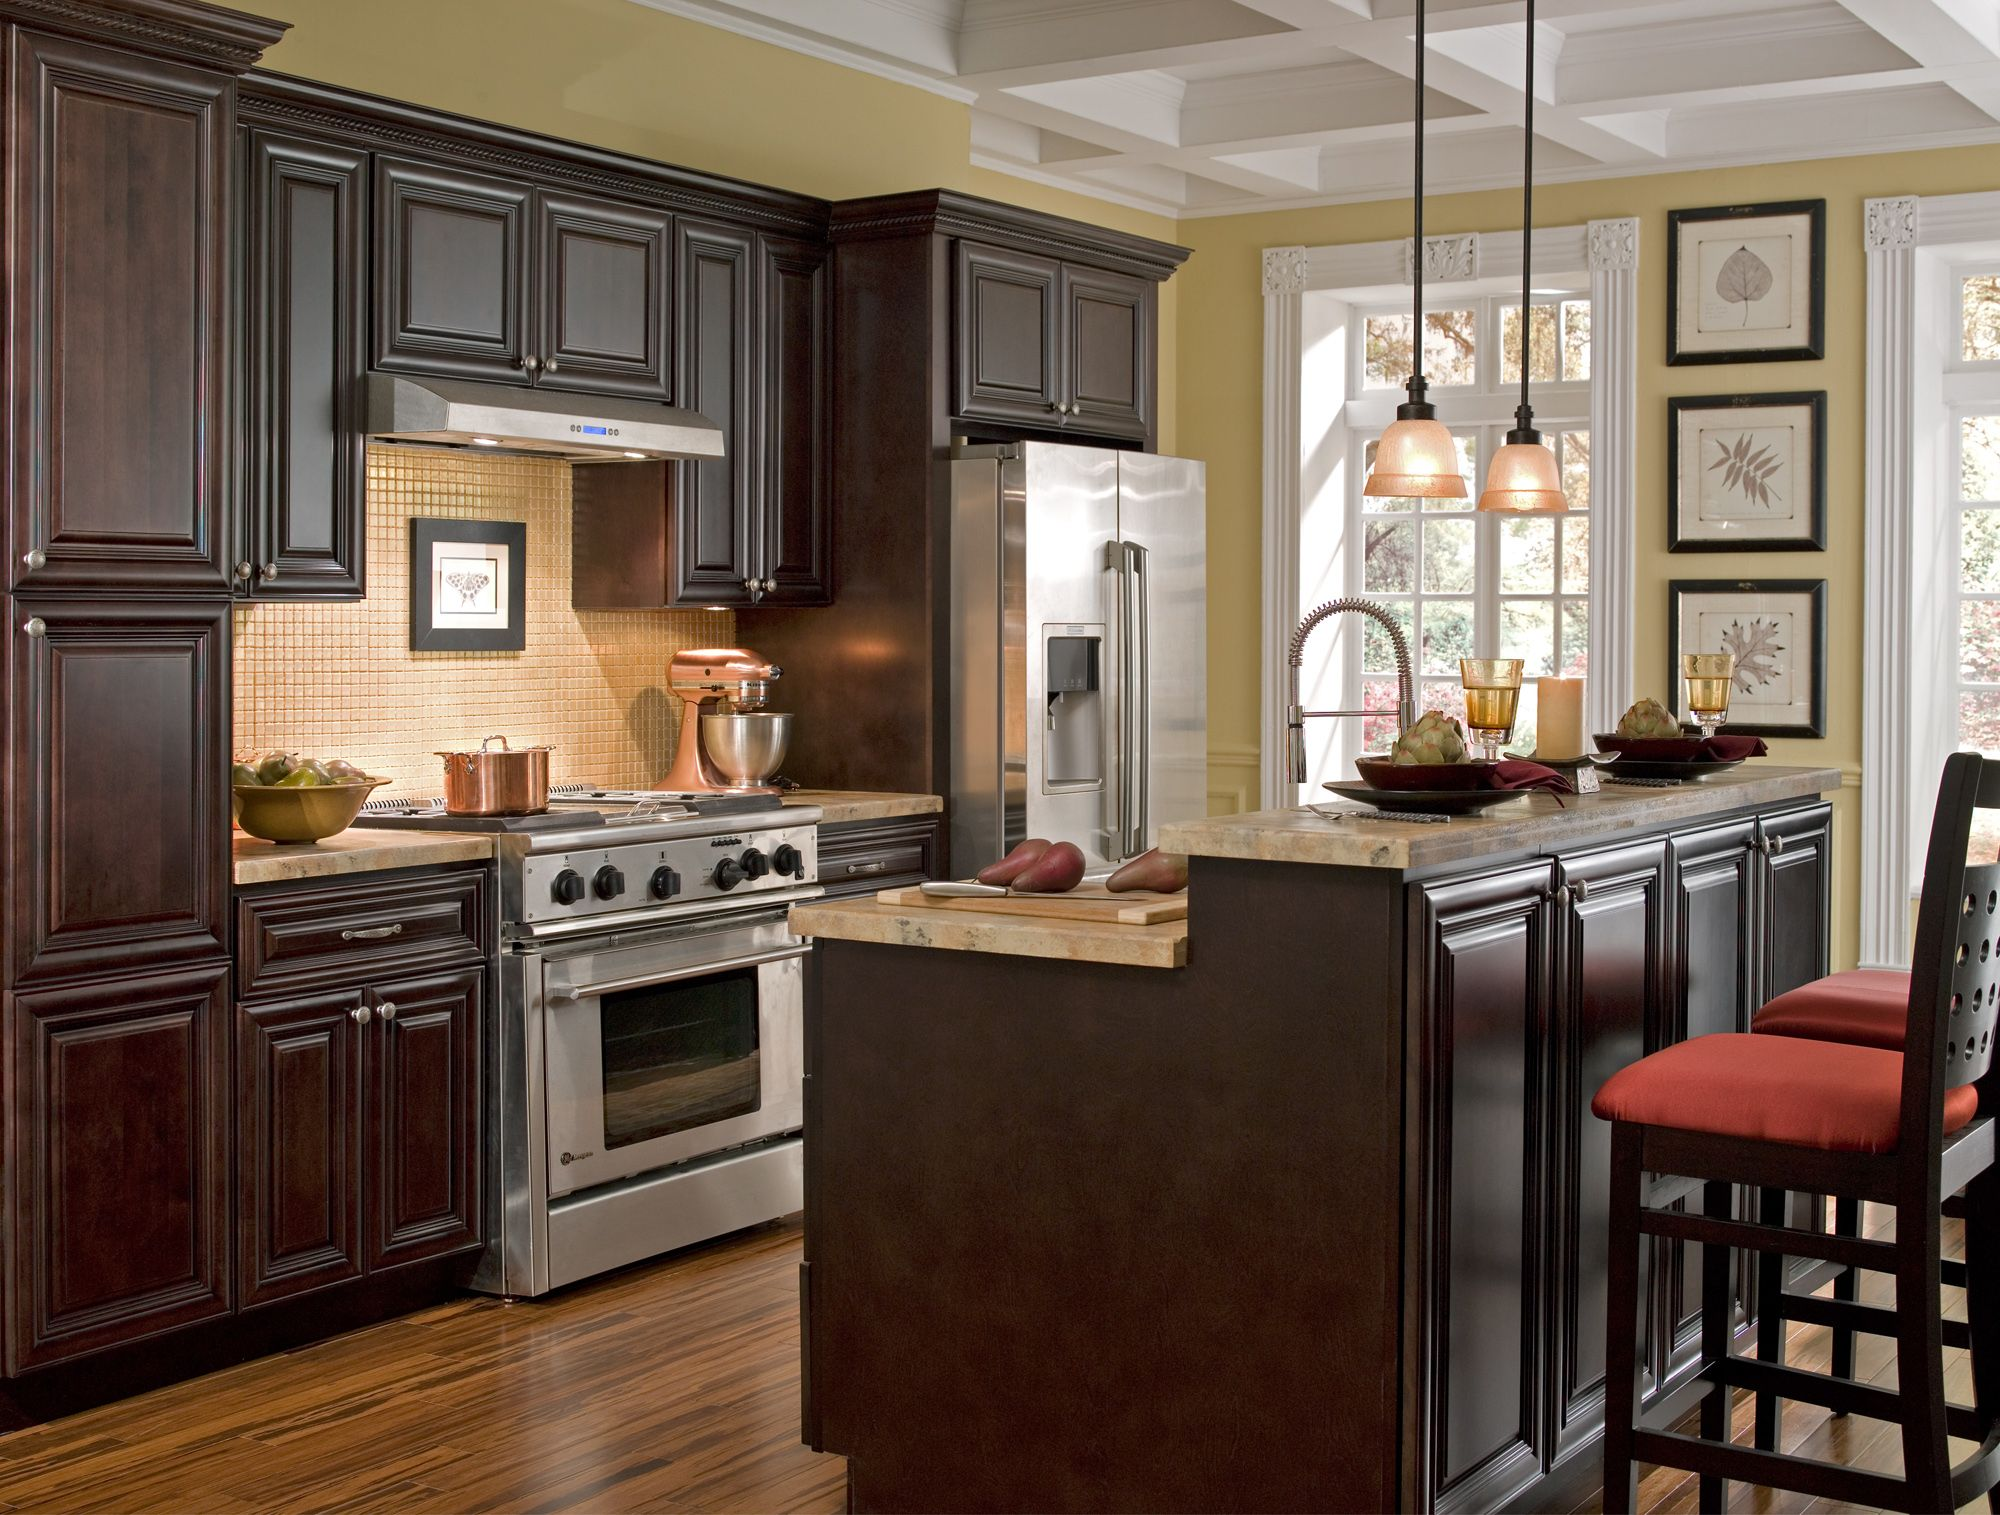 Best Kitchen Gallery: Findley Myers Palm Beach Dark Chocolate Kitchen Features Solid of Chocolate Kitchen Cabinets on cal-ite.com